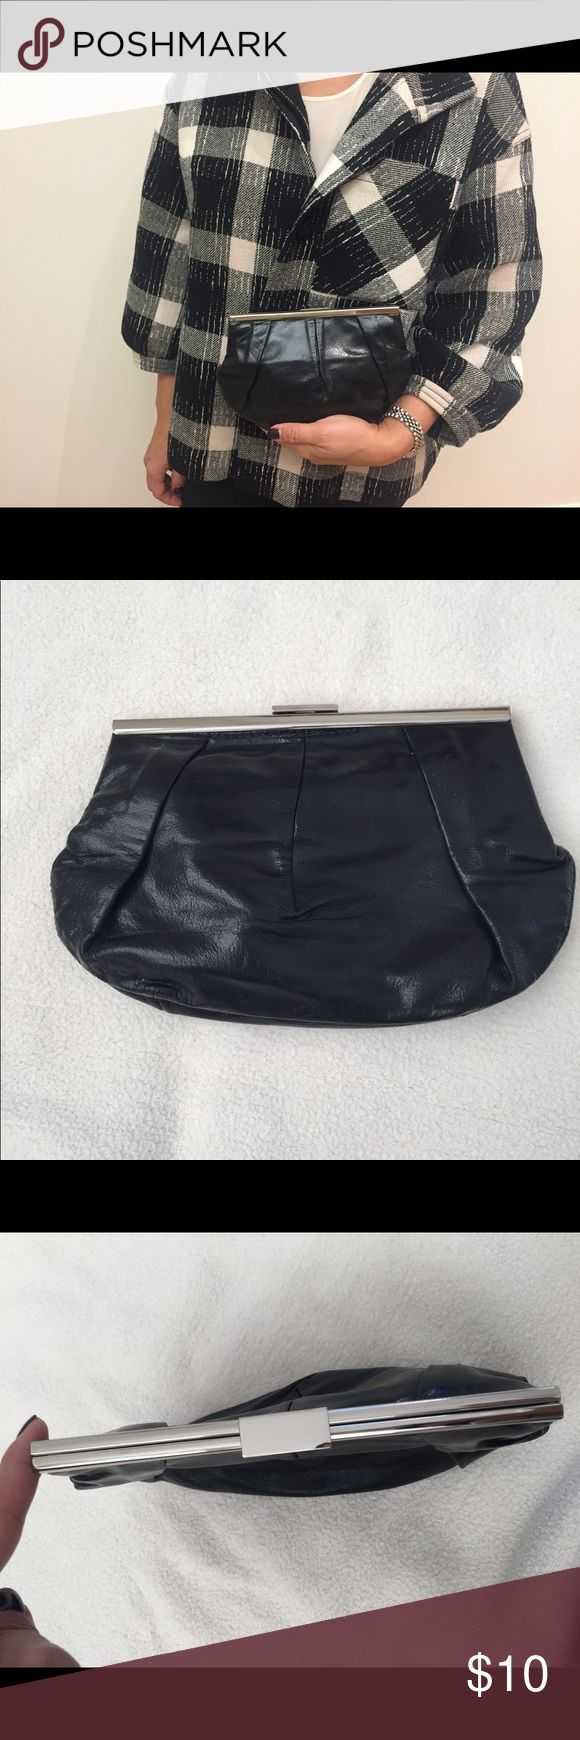 Banana Republic Leather Clutch Great condition black cow leather Clutch from Banana Republic.  Great little purse for going out, fits iPhone and credit cards with a lipstick.  Actually expands to get wider.  The size is about 9 inches and 6 inches tall. Banana Republic Bags Clutches & Wristlets